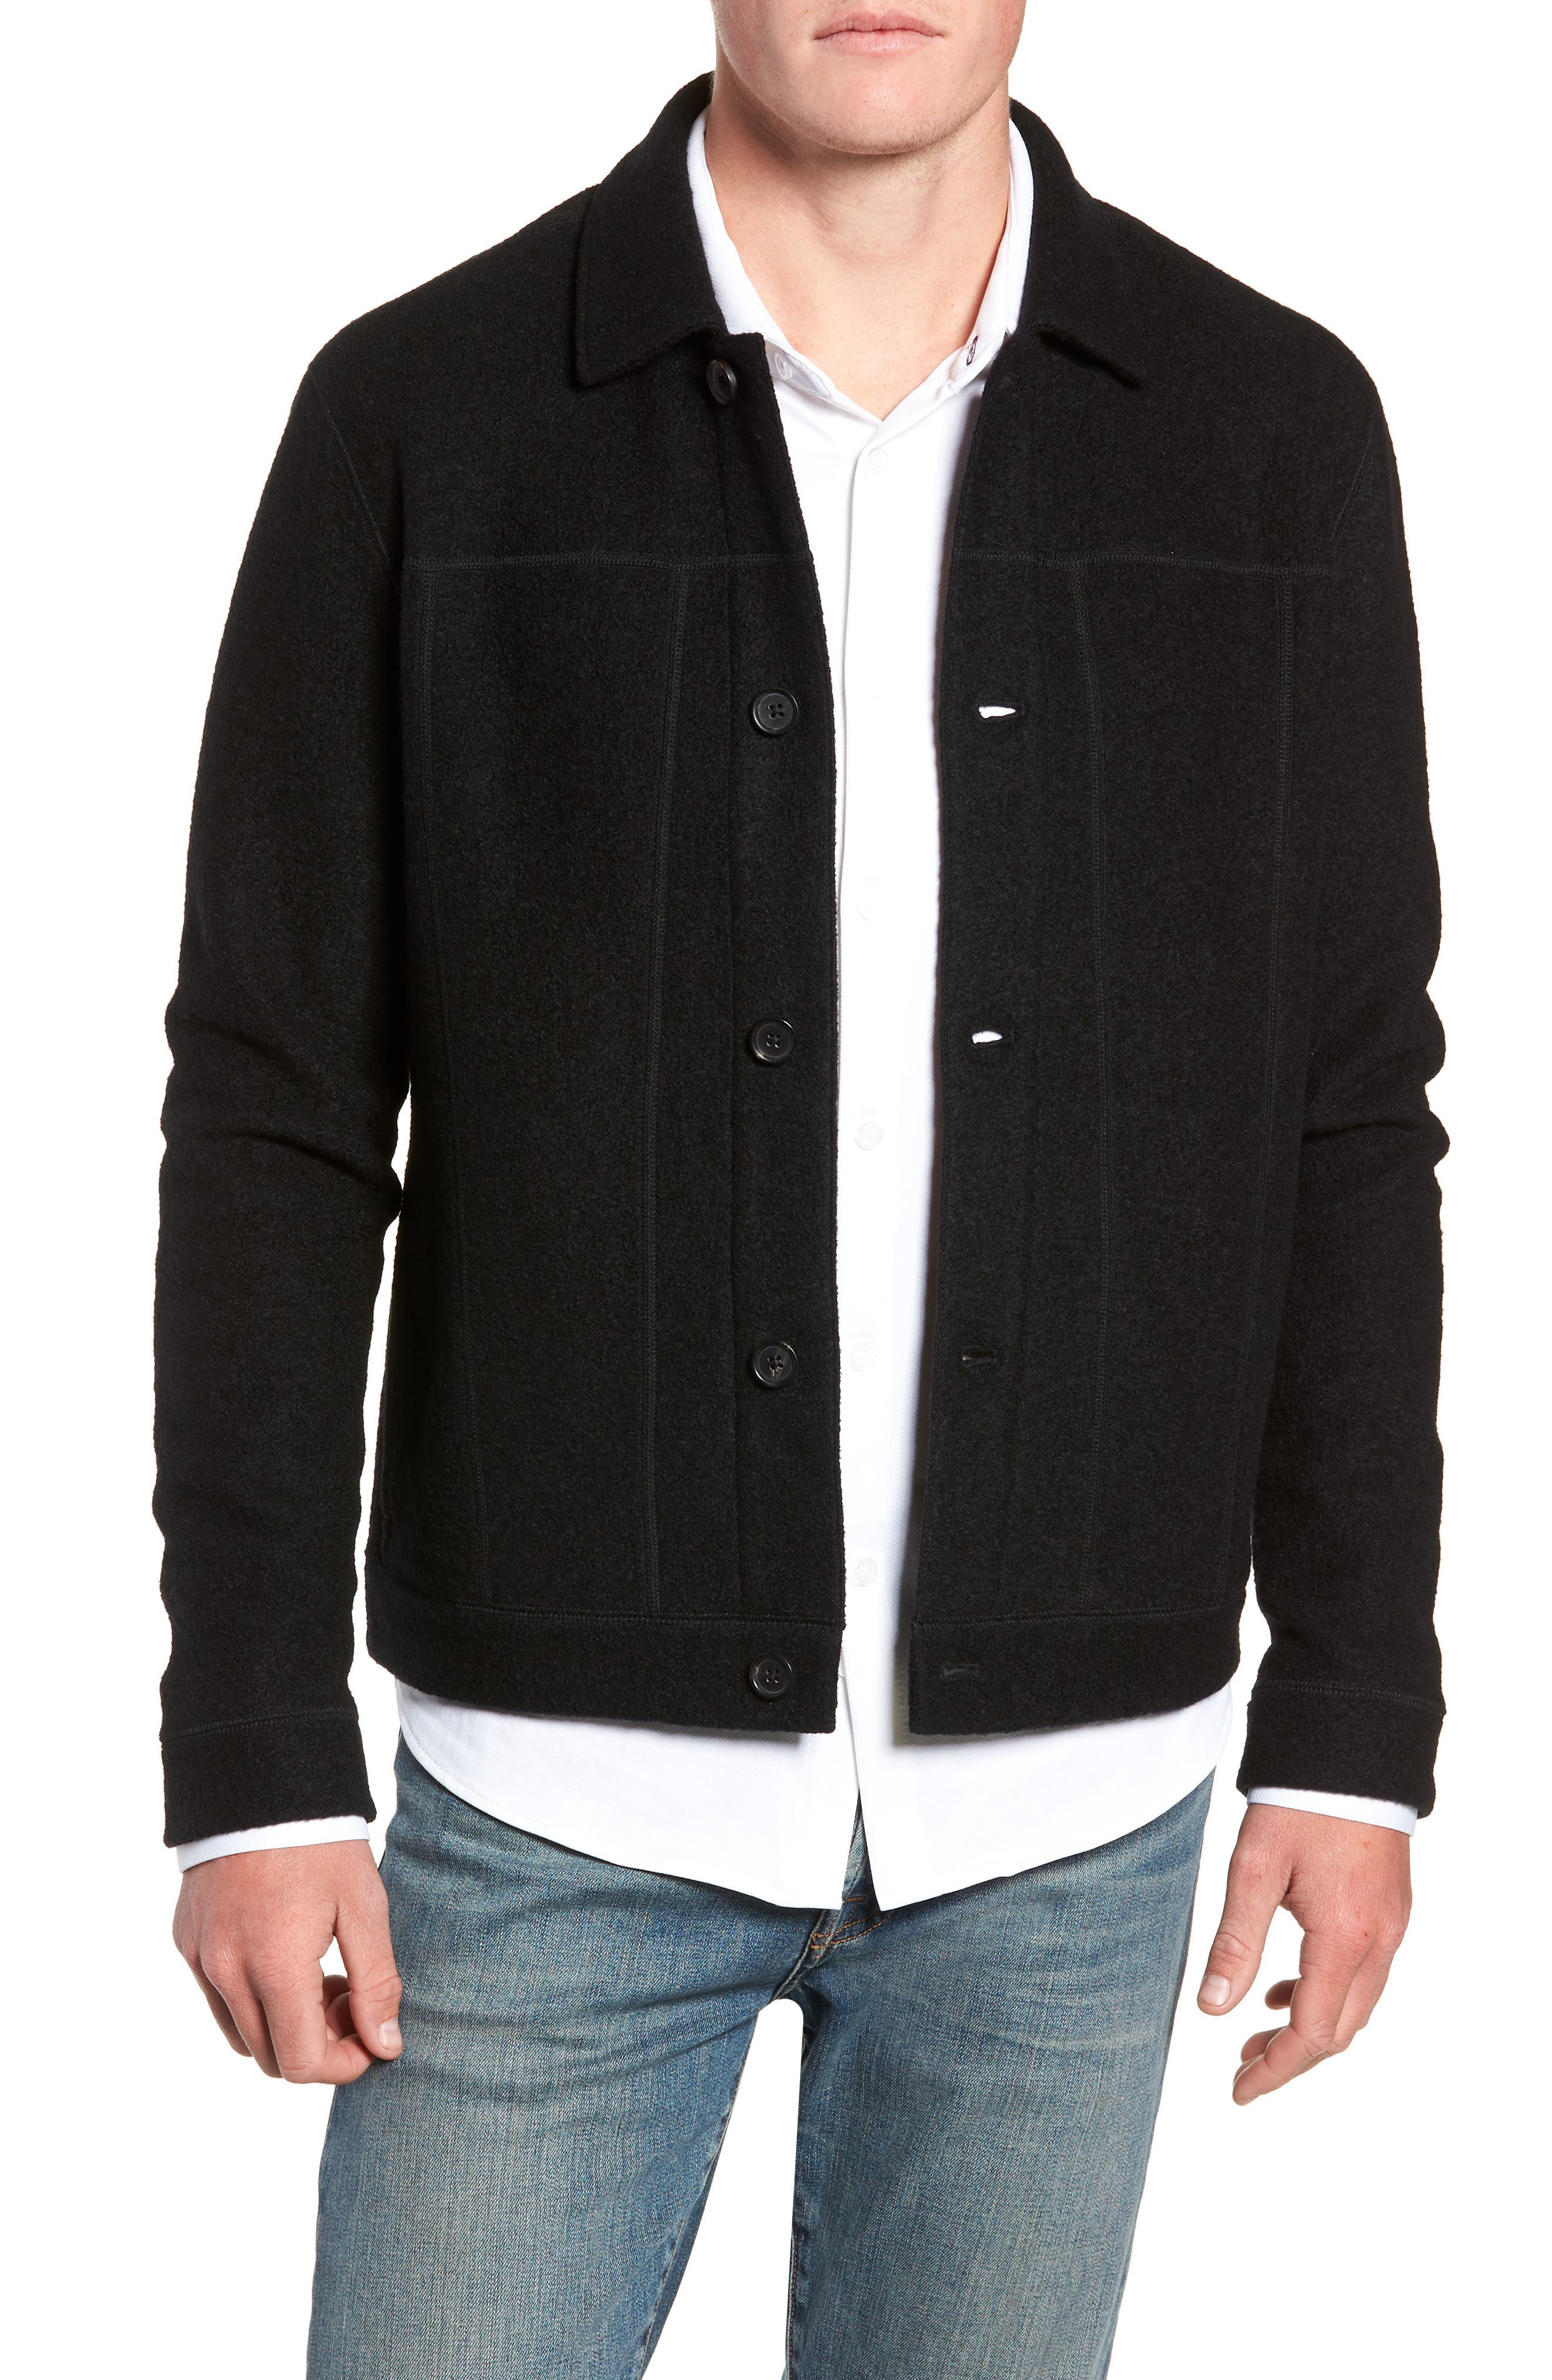 Eastwood Wool Blend Jacket,                             Main thumbnail 1, color,                             BLACK